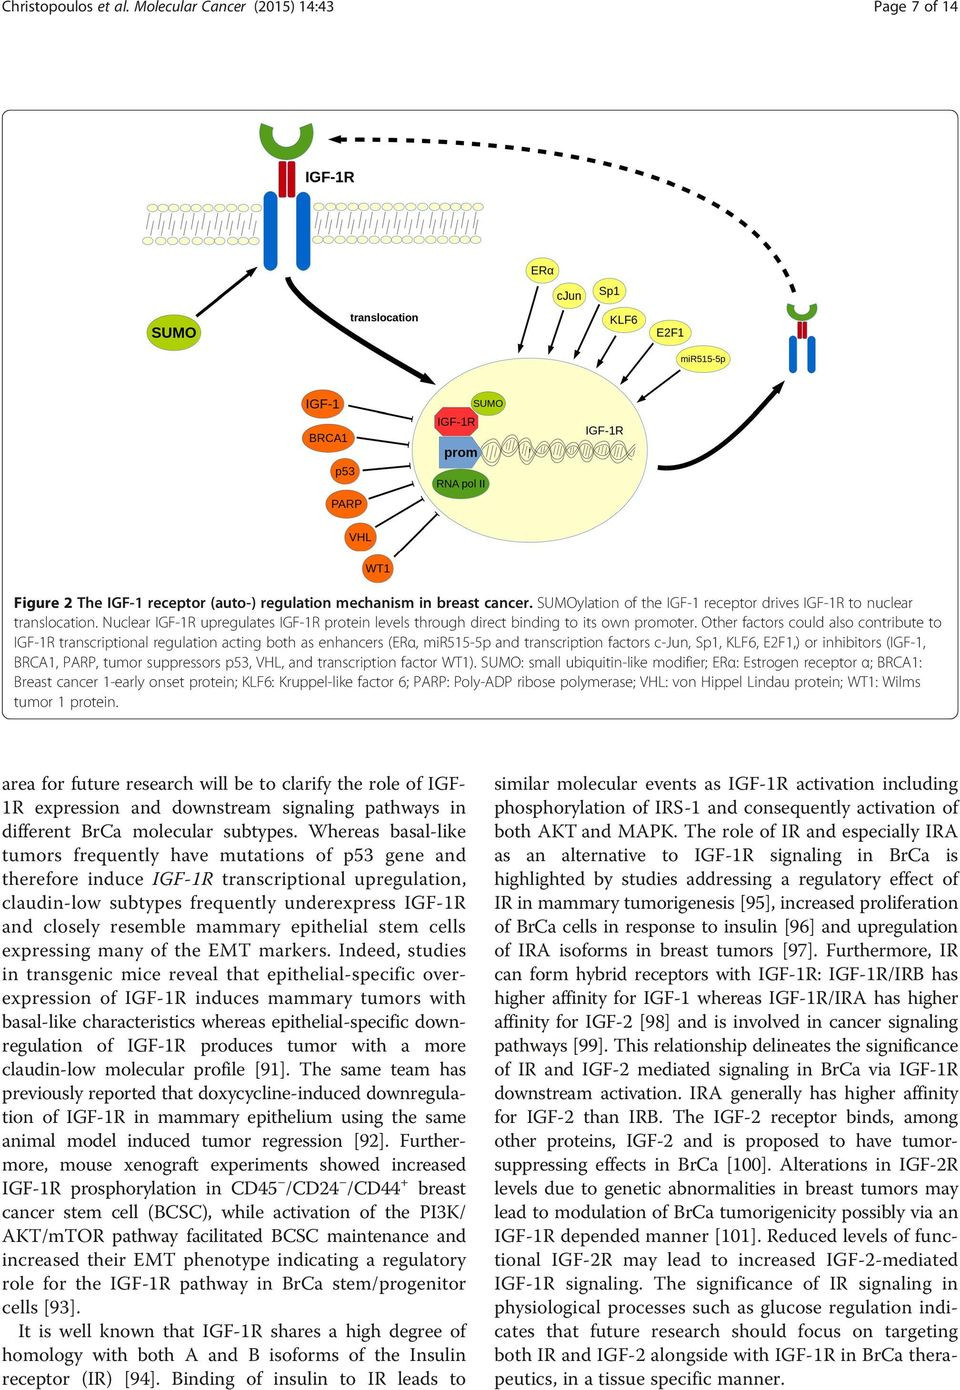 Other factors could also contribute to IGF-1R transcriptional regulation acting both as enhancers (ERα, mir515-5p and transcription factors c-jun, Sp1, KLF6, E2F1,) or inhibitors (IGF-1, BRCA1, PARP,